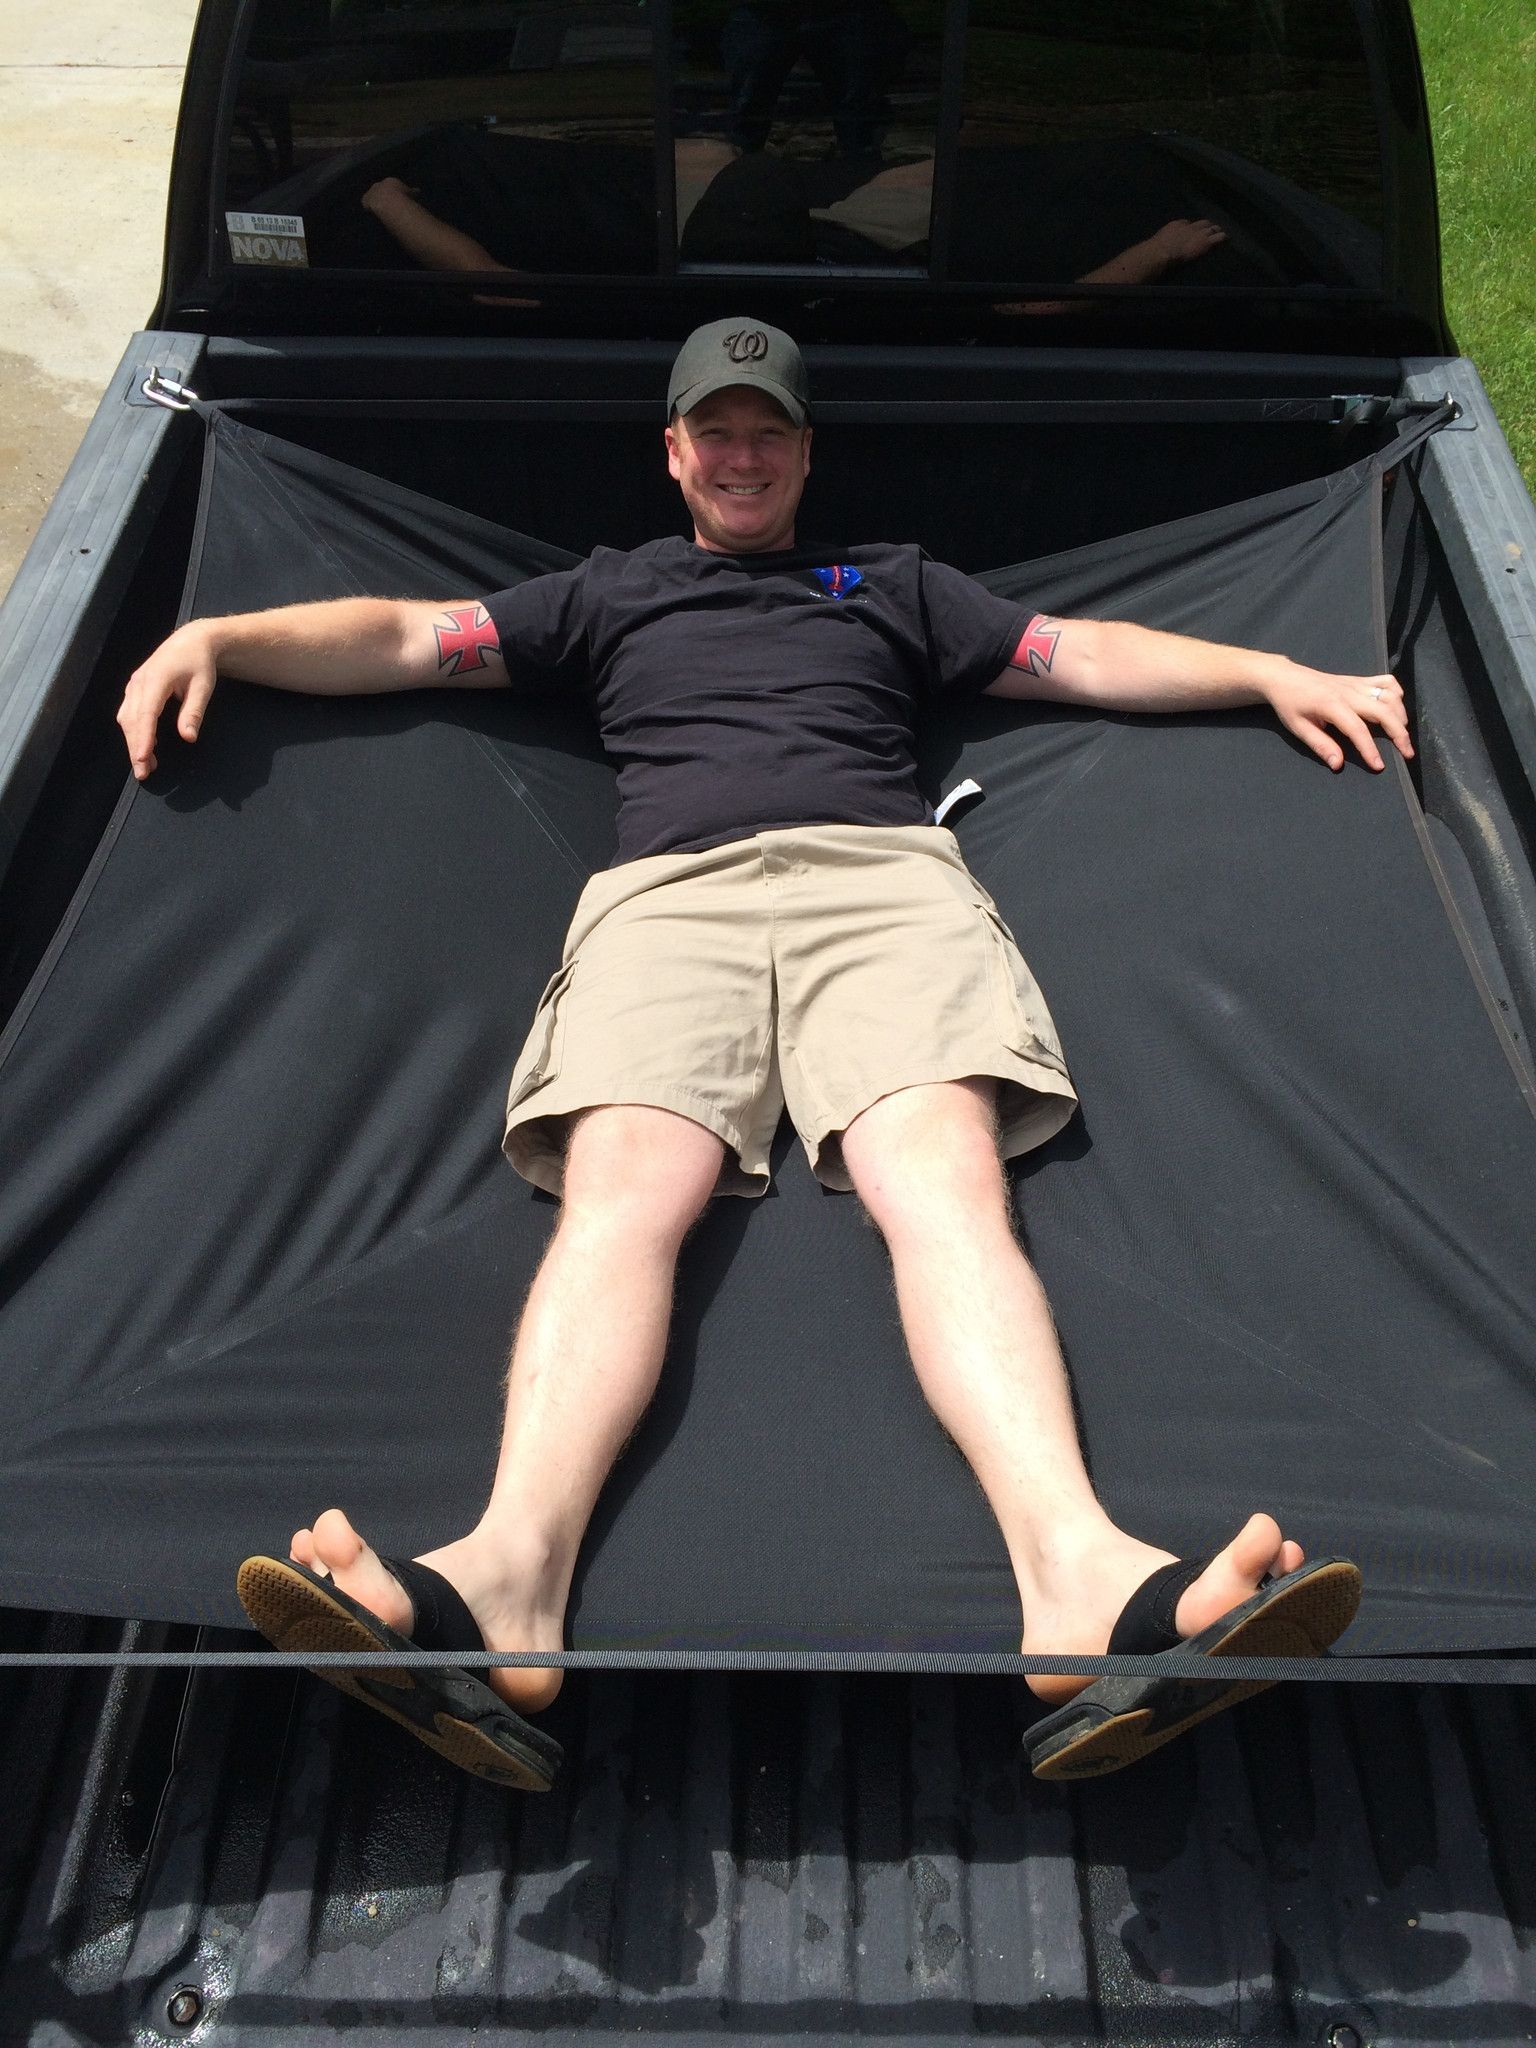 The Jammocktruck Is Hammock For Your Truck Bed It S A